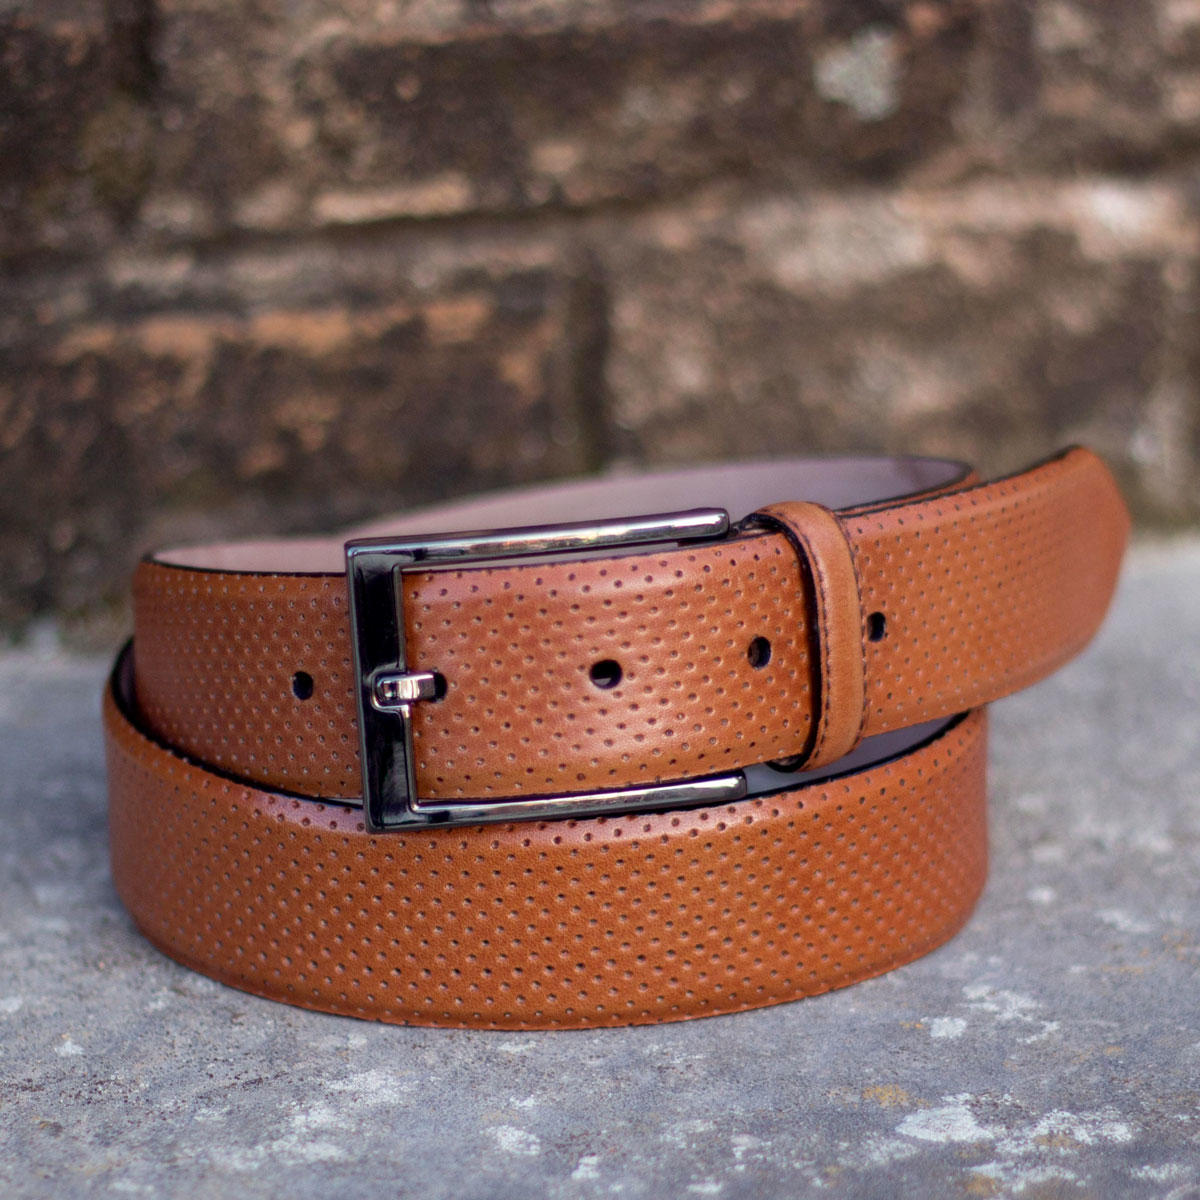 Manor of London 'Hamptons' Perforated Painted Cognac Calfskin Luxury Leather Belt Front View